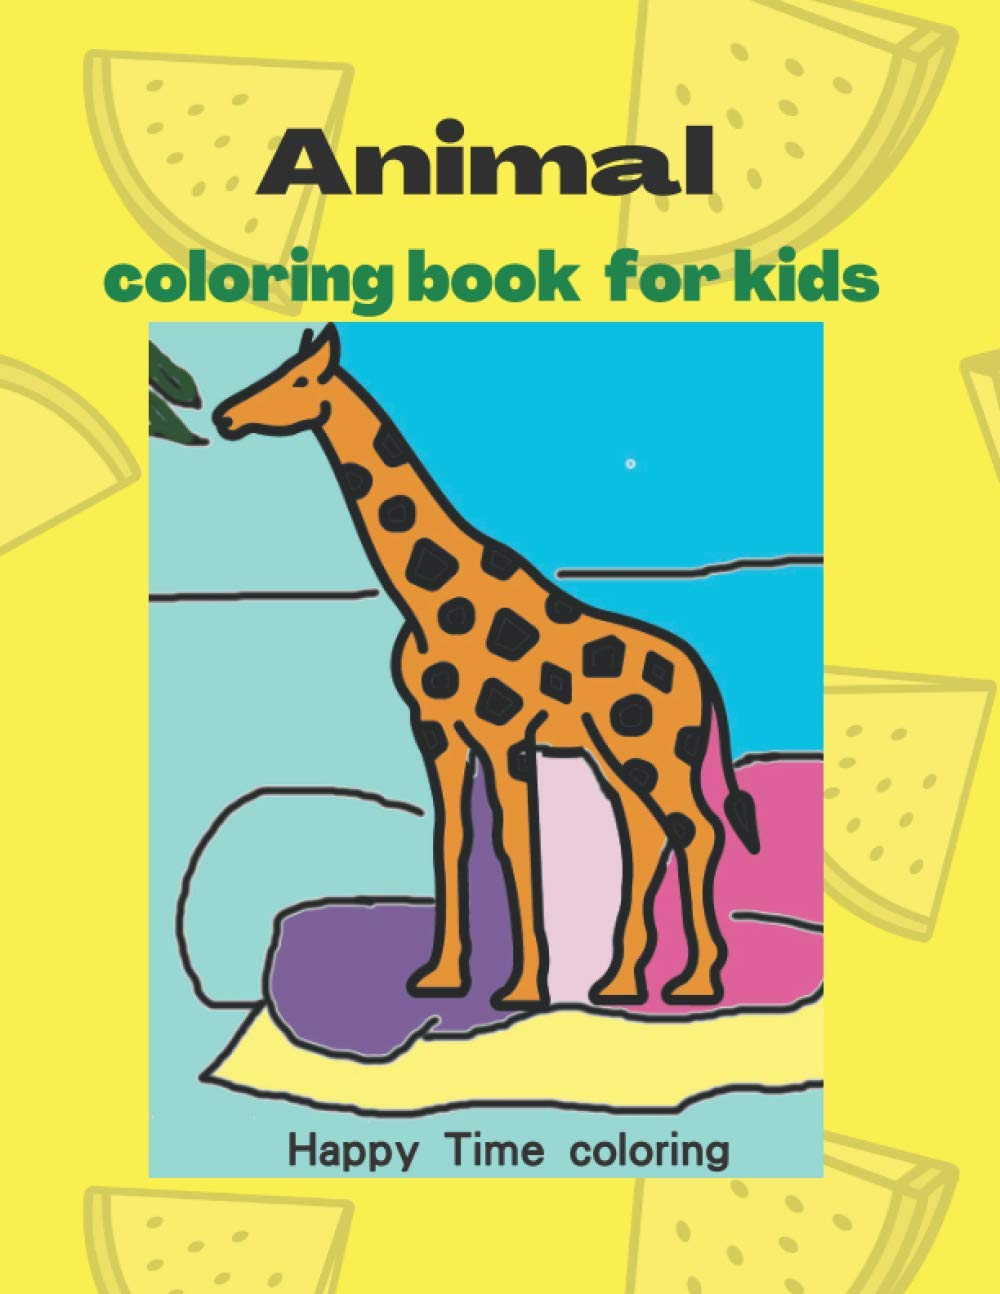 Animal Coloring Books For Kids Playful Fun And Easy Animal Coloring Pages For Beginners Boys And Girls For Relaxations Happy Time Coloring Happy Time Coloring Grace Tiffany Clark 9798689379616 Amazon Com Books